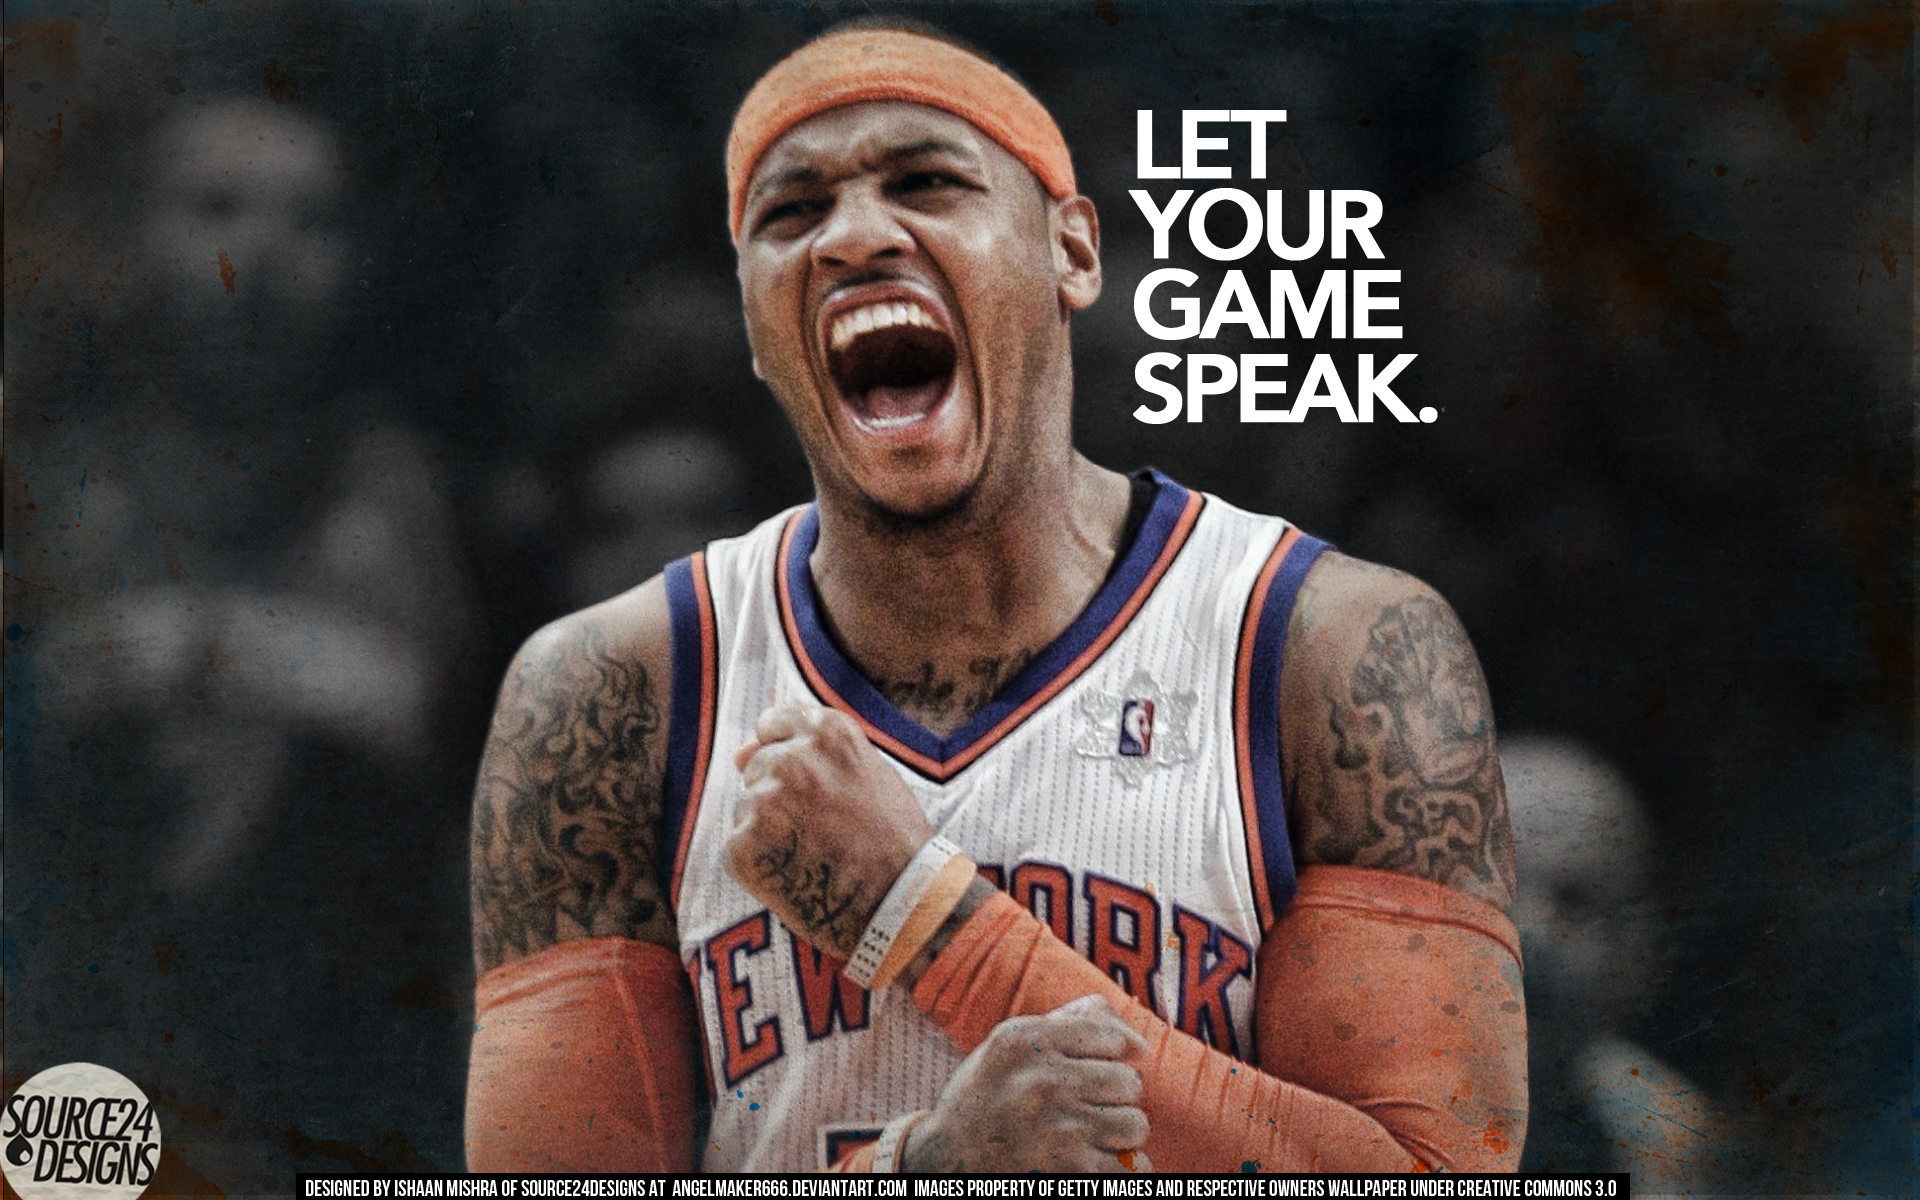 carmelo anthony quotes basketball - photo #30